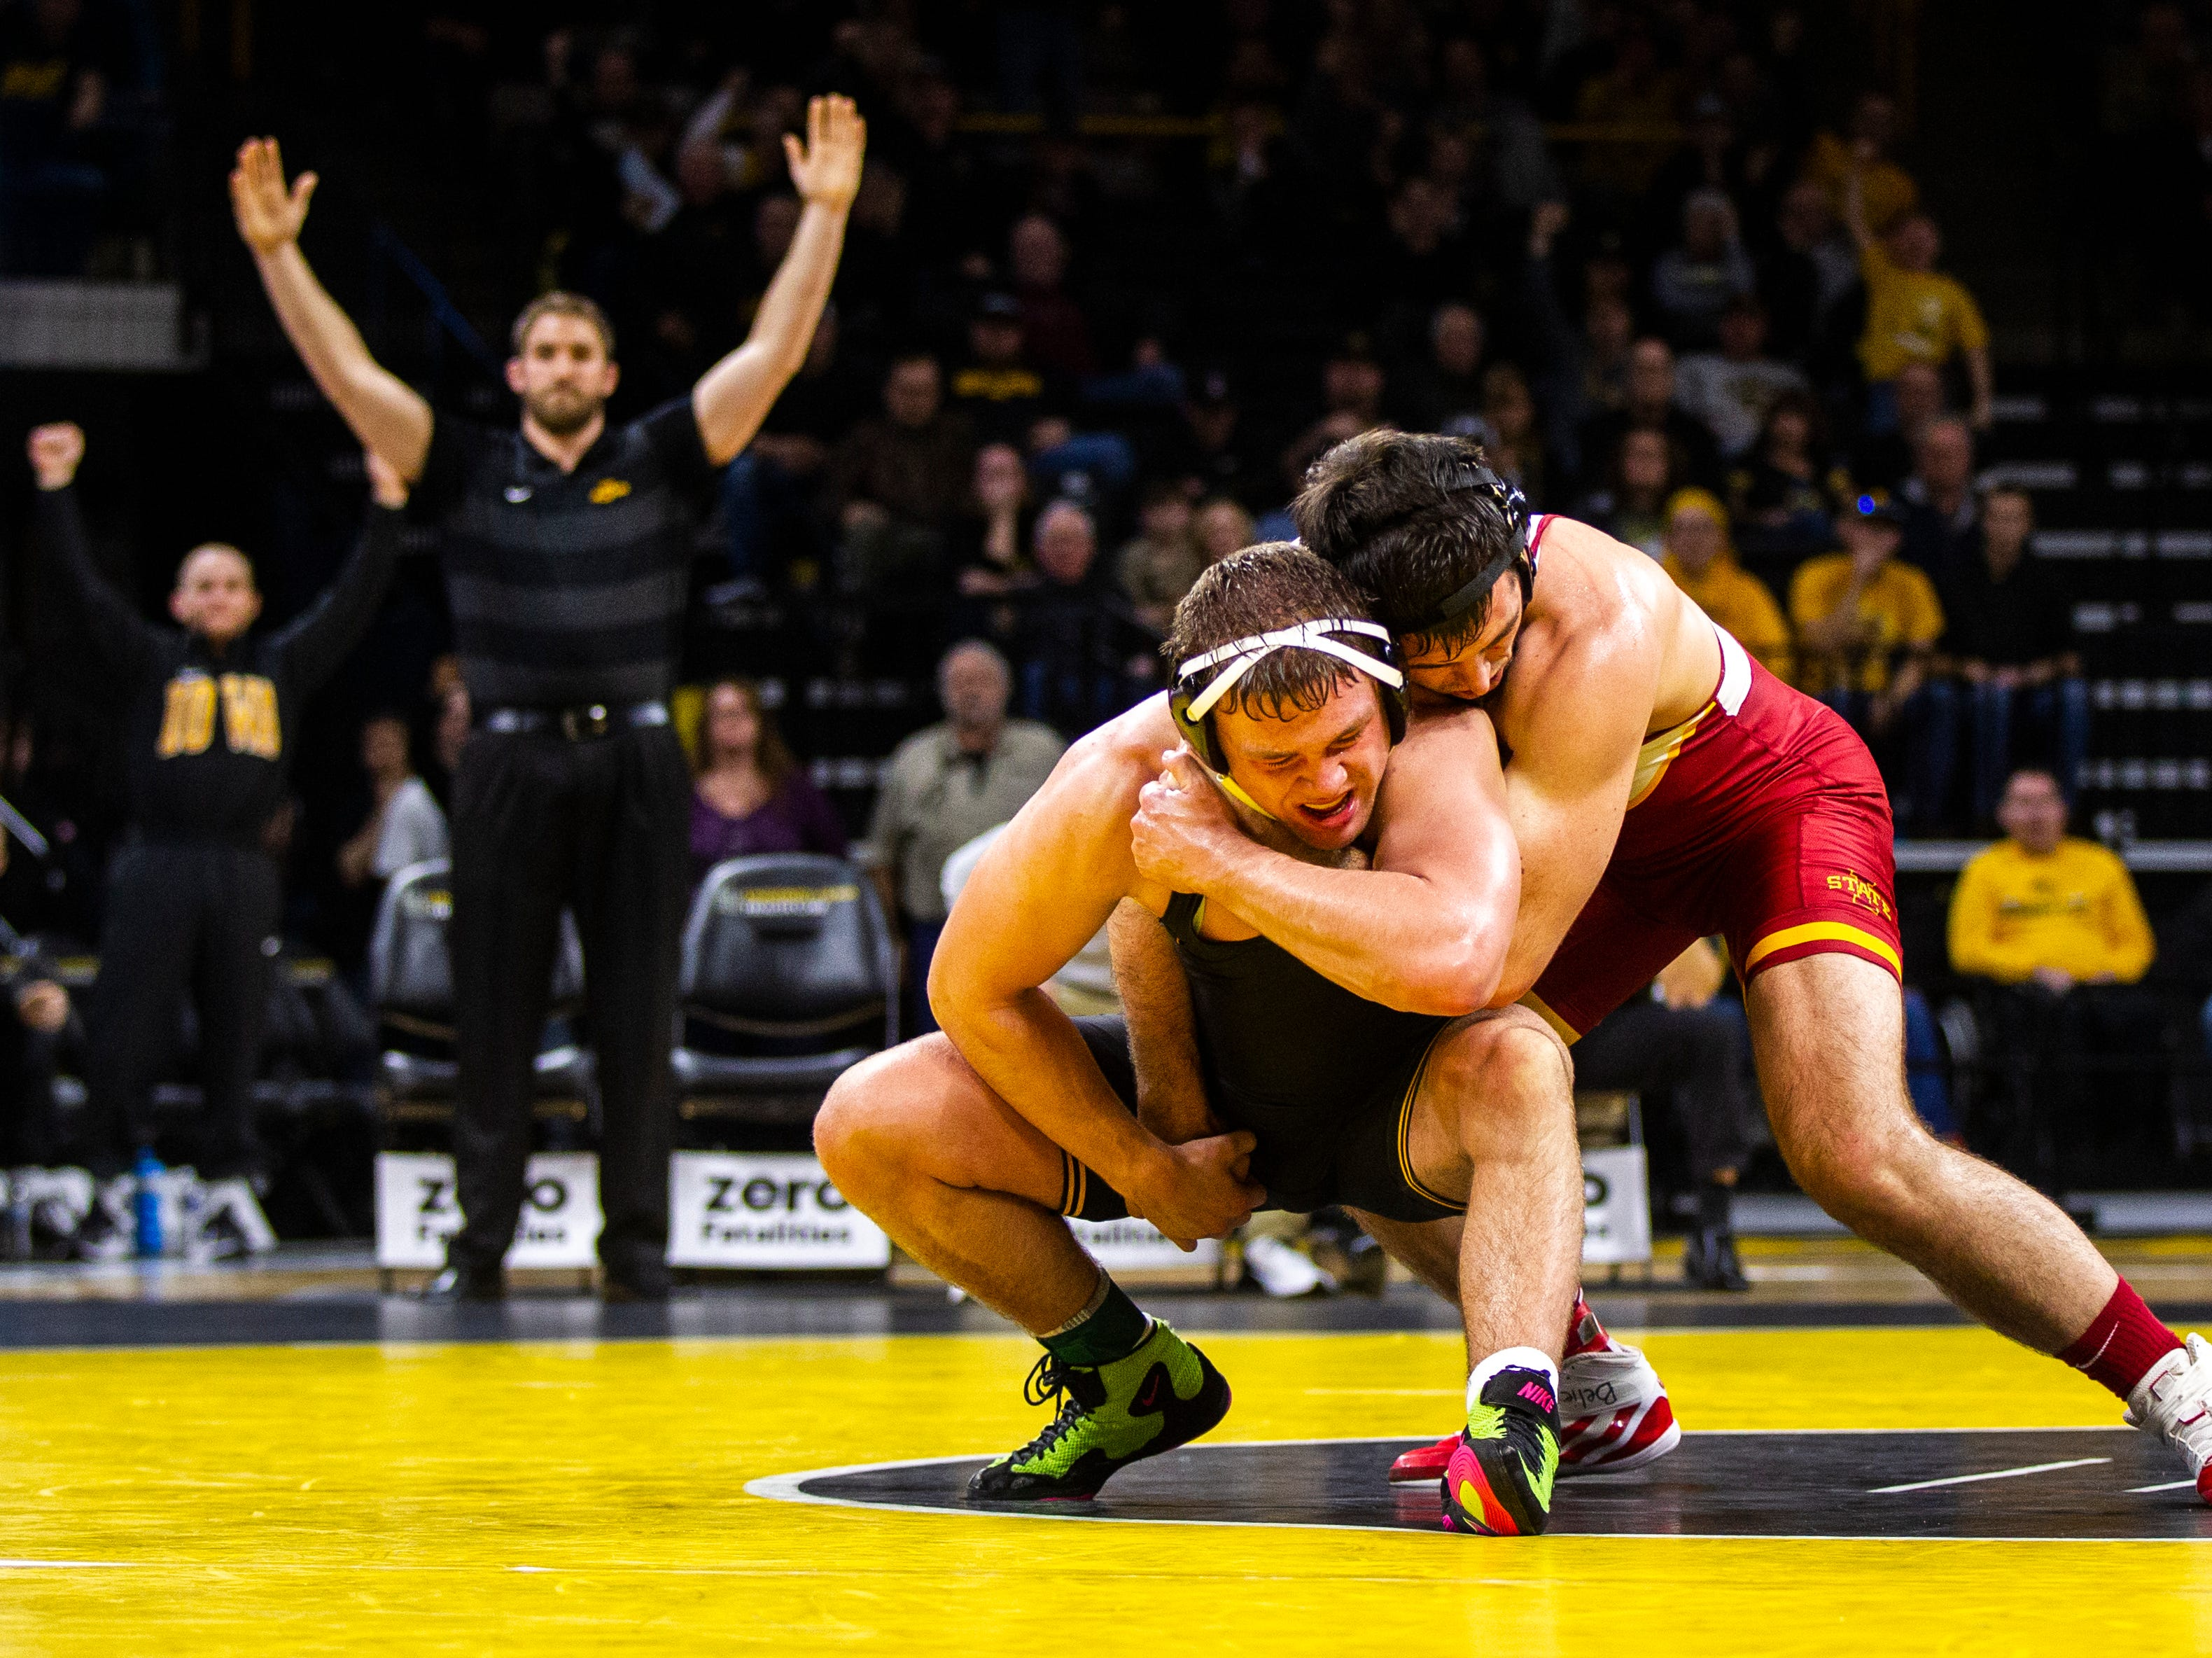 Iowa's Jacob Warner, left, wrestles Iowa State's Willie Miklus at 197 while Iowa volunteer assistant coach Bobby Telford gestures in the background during a NCAA Cy-Hawk series wrestling dual on Saturday, Dec. 1, 2018, at Carver-Hawkeye Arena in Iowa City.